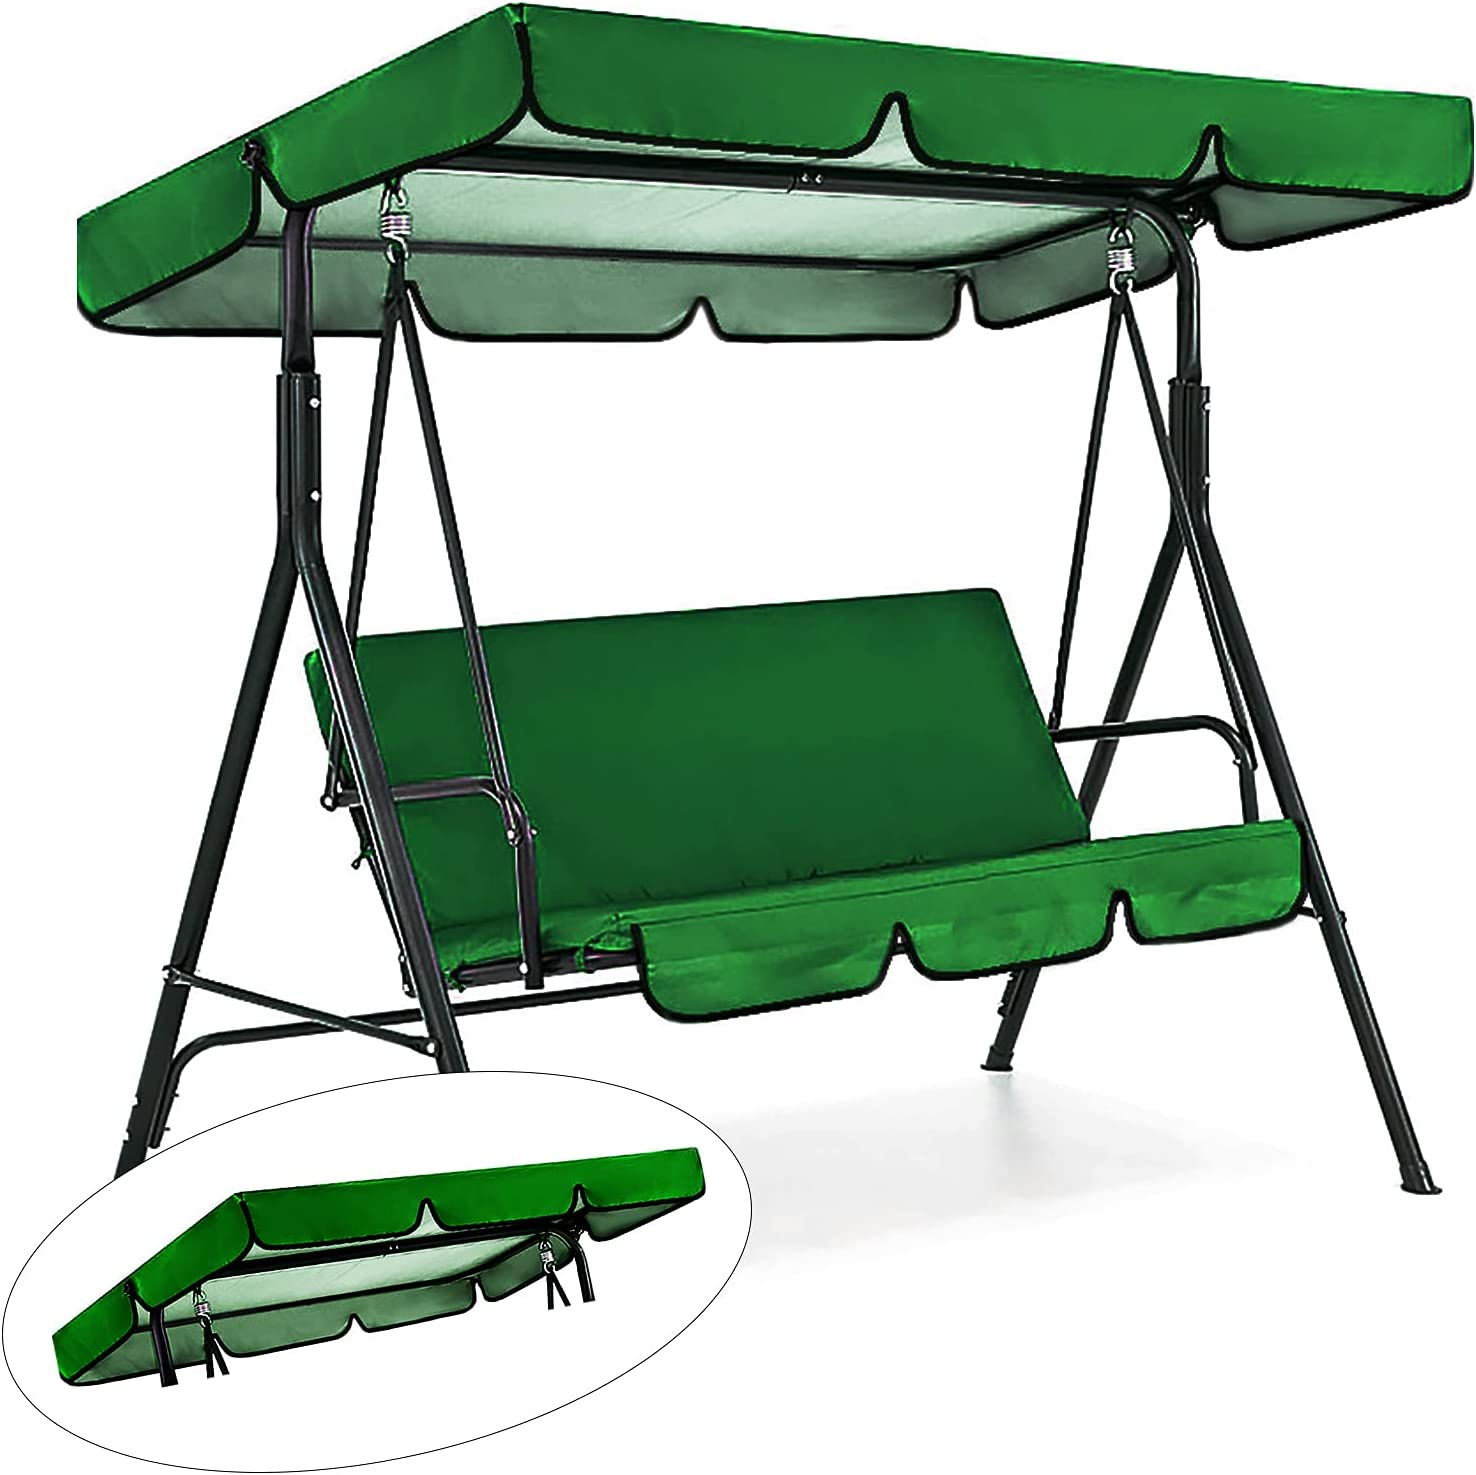 Patio Swing Canopy Replacement Top Cover, Premium Waterproof Porch Swing Cover with Canopy, Outdoor Garden Swing Top Dustproof Cover for Courtyard Sun Shade, Top Cover Only (Green)